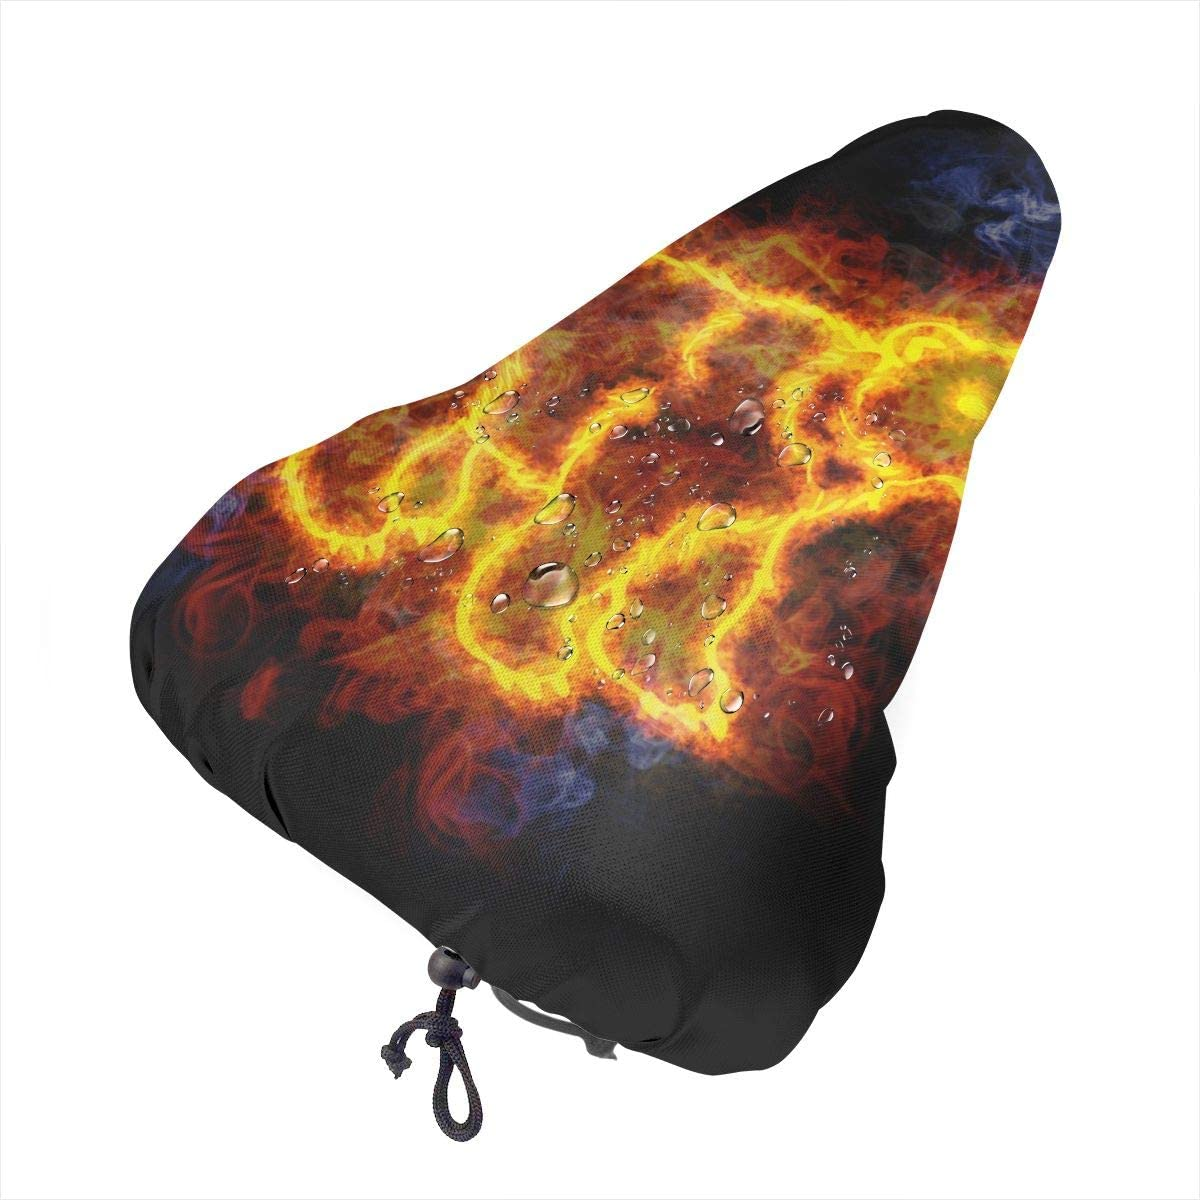 ZHOUSUN Waterproof Bike Seat Cover Cute Bear, Covered in Flames. Bicycle Saddle Rain Dust Covers with Drawstring,Comfort for Women,Men,Kids